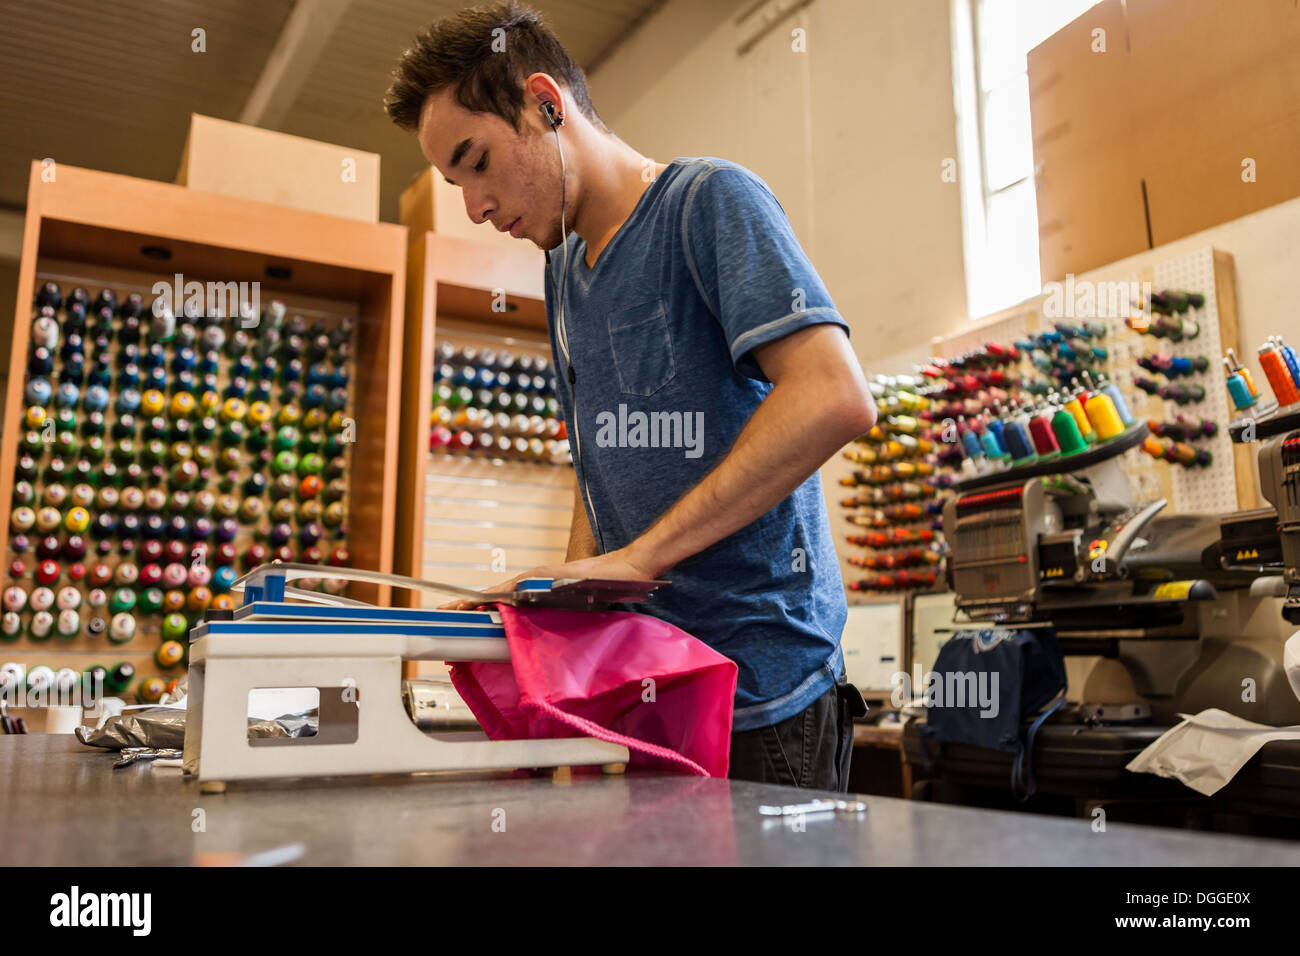 Worker using embroidery machine in t-shirt printing workshop - Stock Image